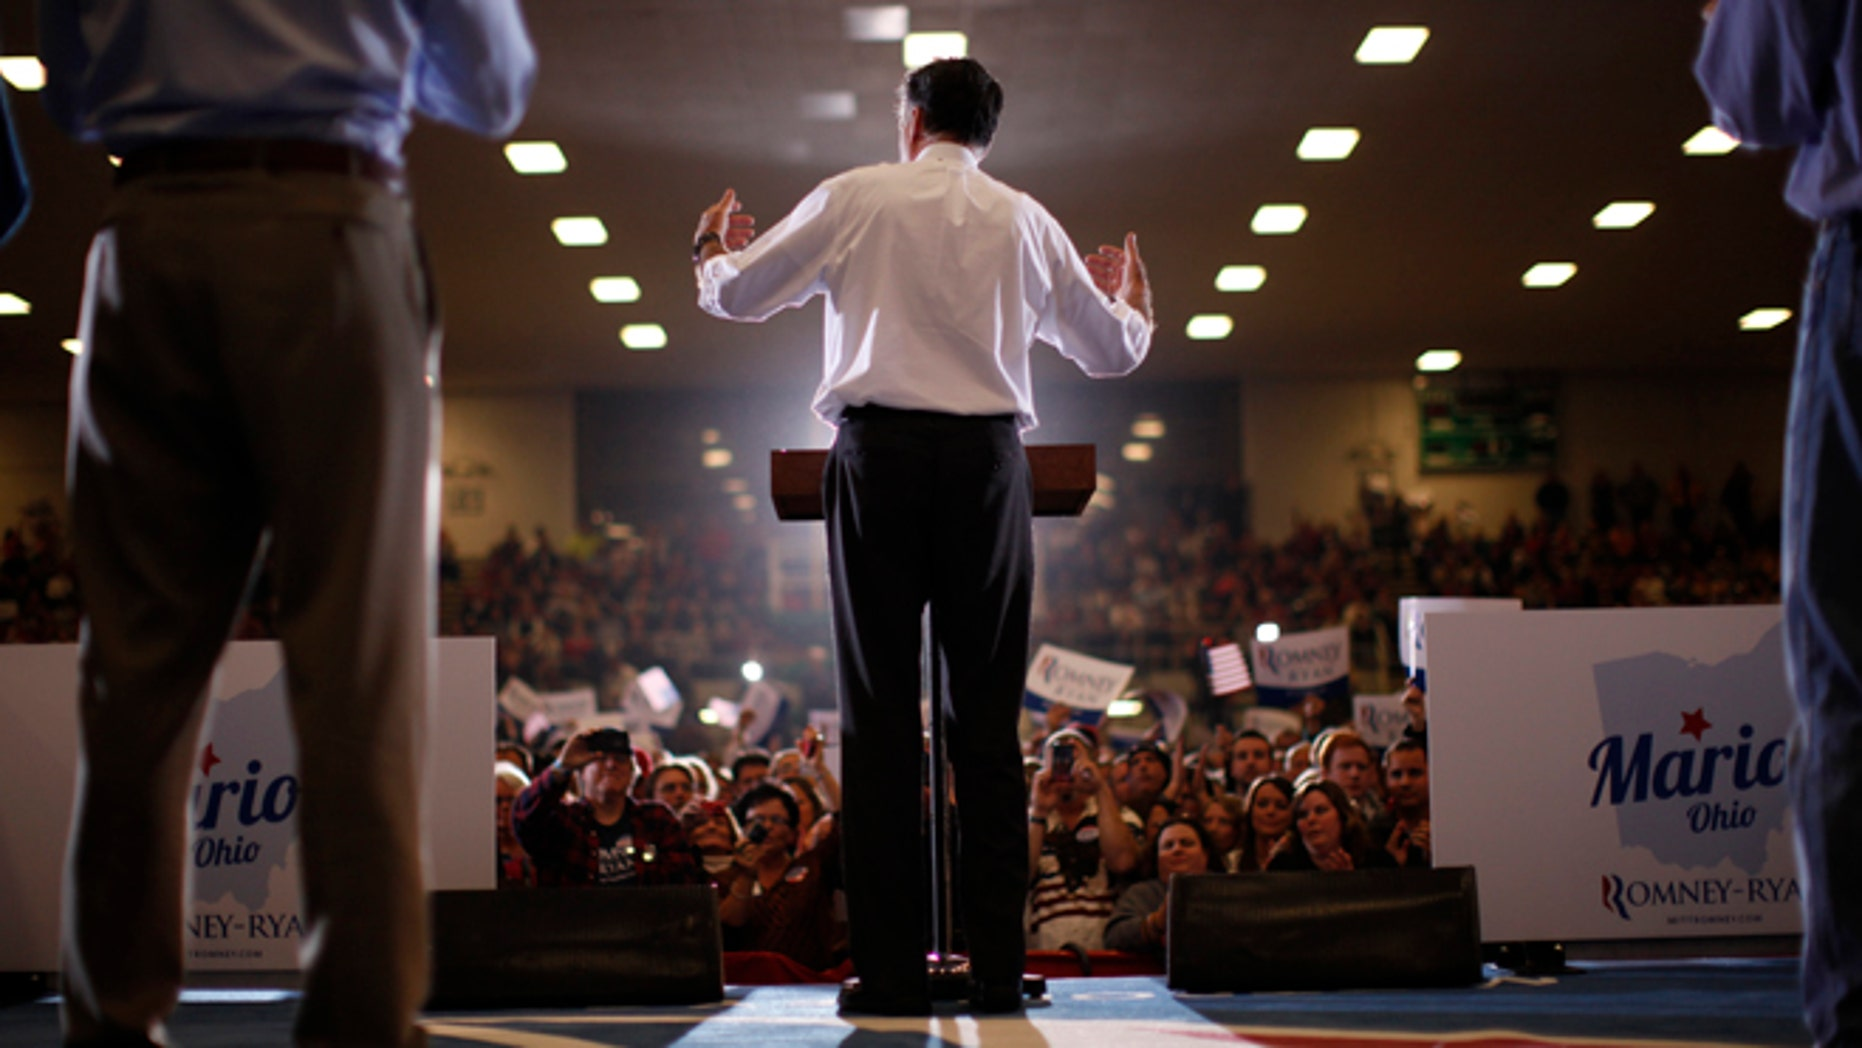 Republican presidential candidate and former Massachusetts Gov. Mitt Romney campaigns at the Veterans Memorial Coliseum, Marion County Fairgrounds, in Marion, Ohio, Sunday, Oct. 28, 2012. (AP Photo/Charles Dharapak)